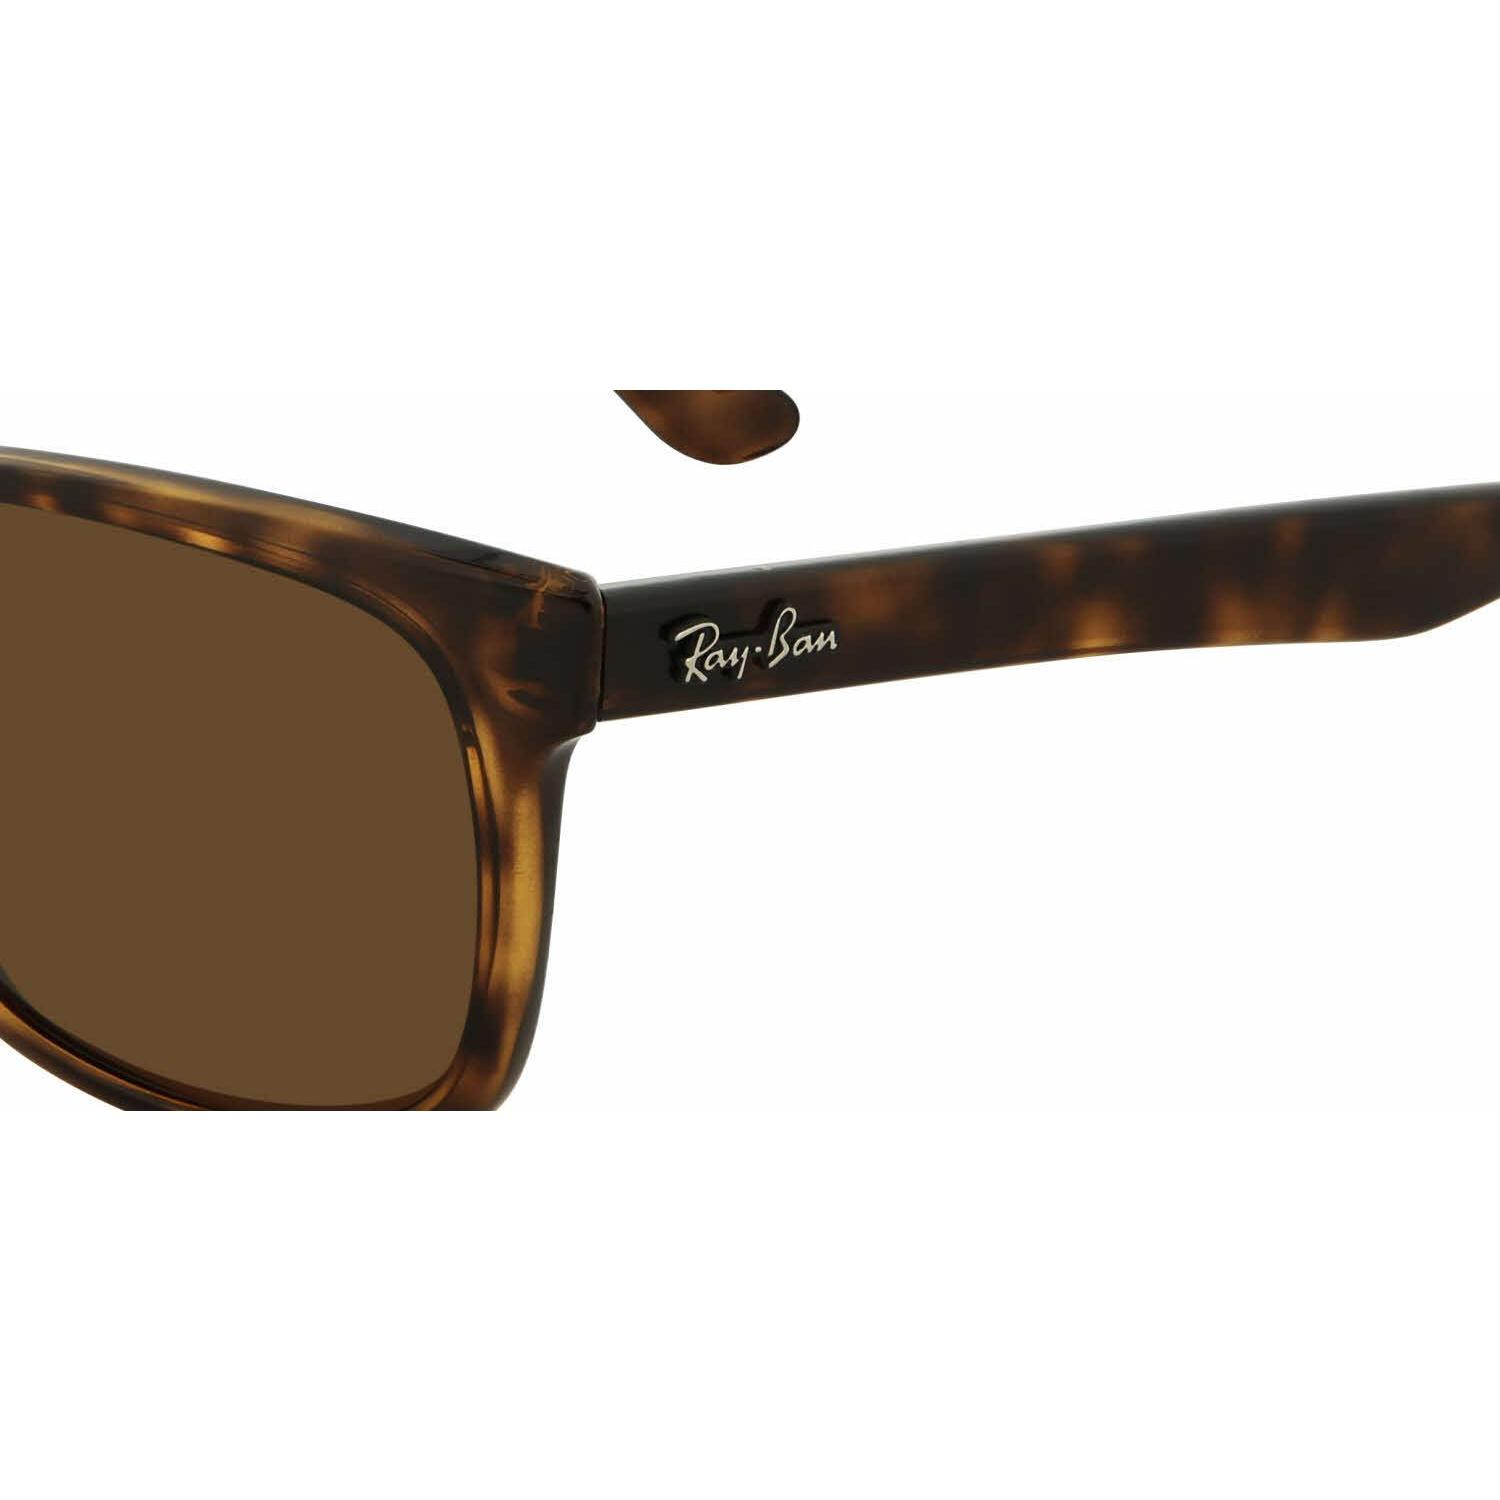 112dfd172af Shop Ray Ban Mens RB4181 710 83 Havana Plastic Square Sunglasses - Brown -  Free Shipping Today - Overstock - 13469085